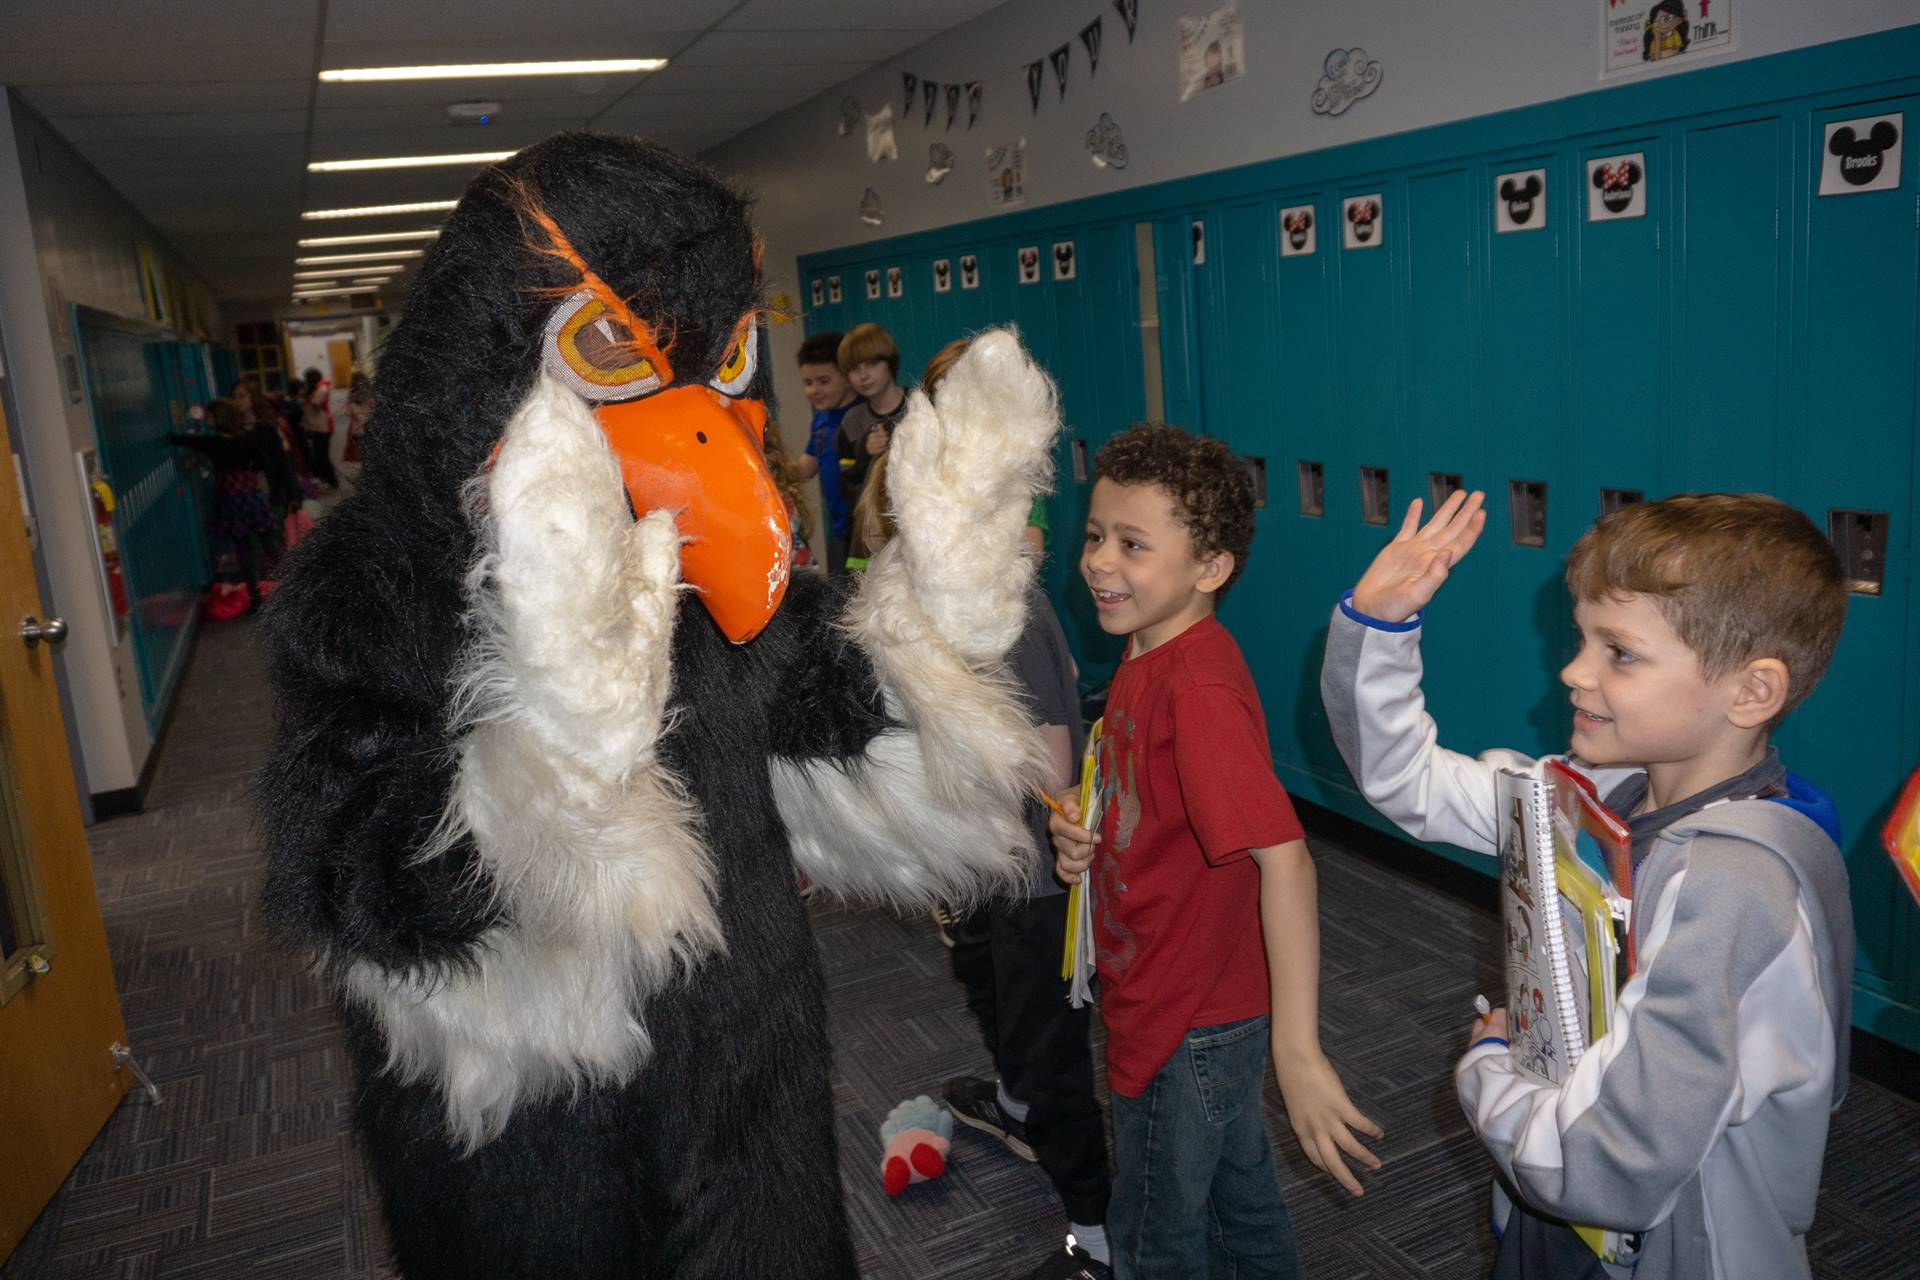 The Hawk high-fiving a student